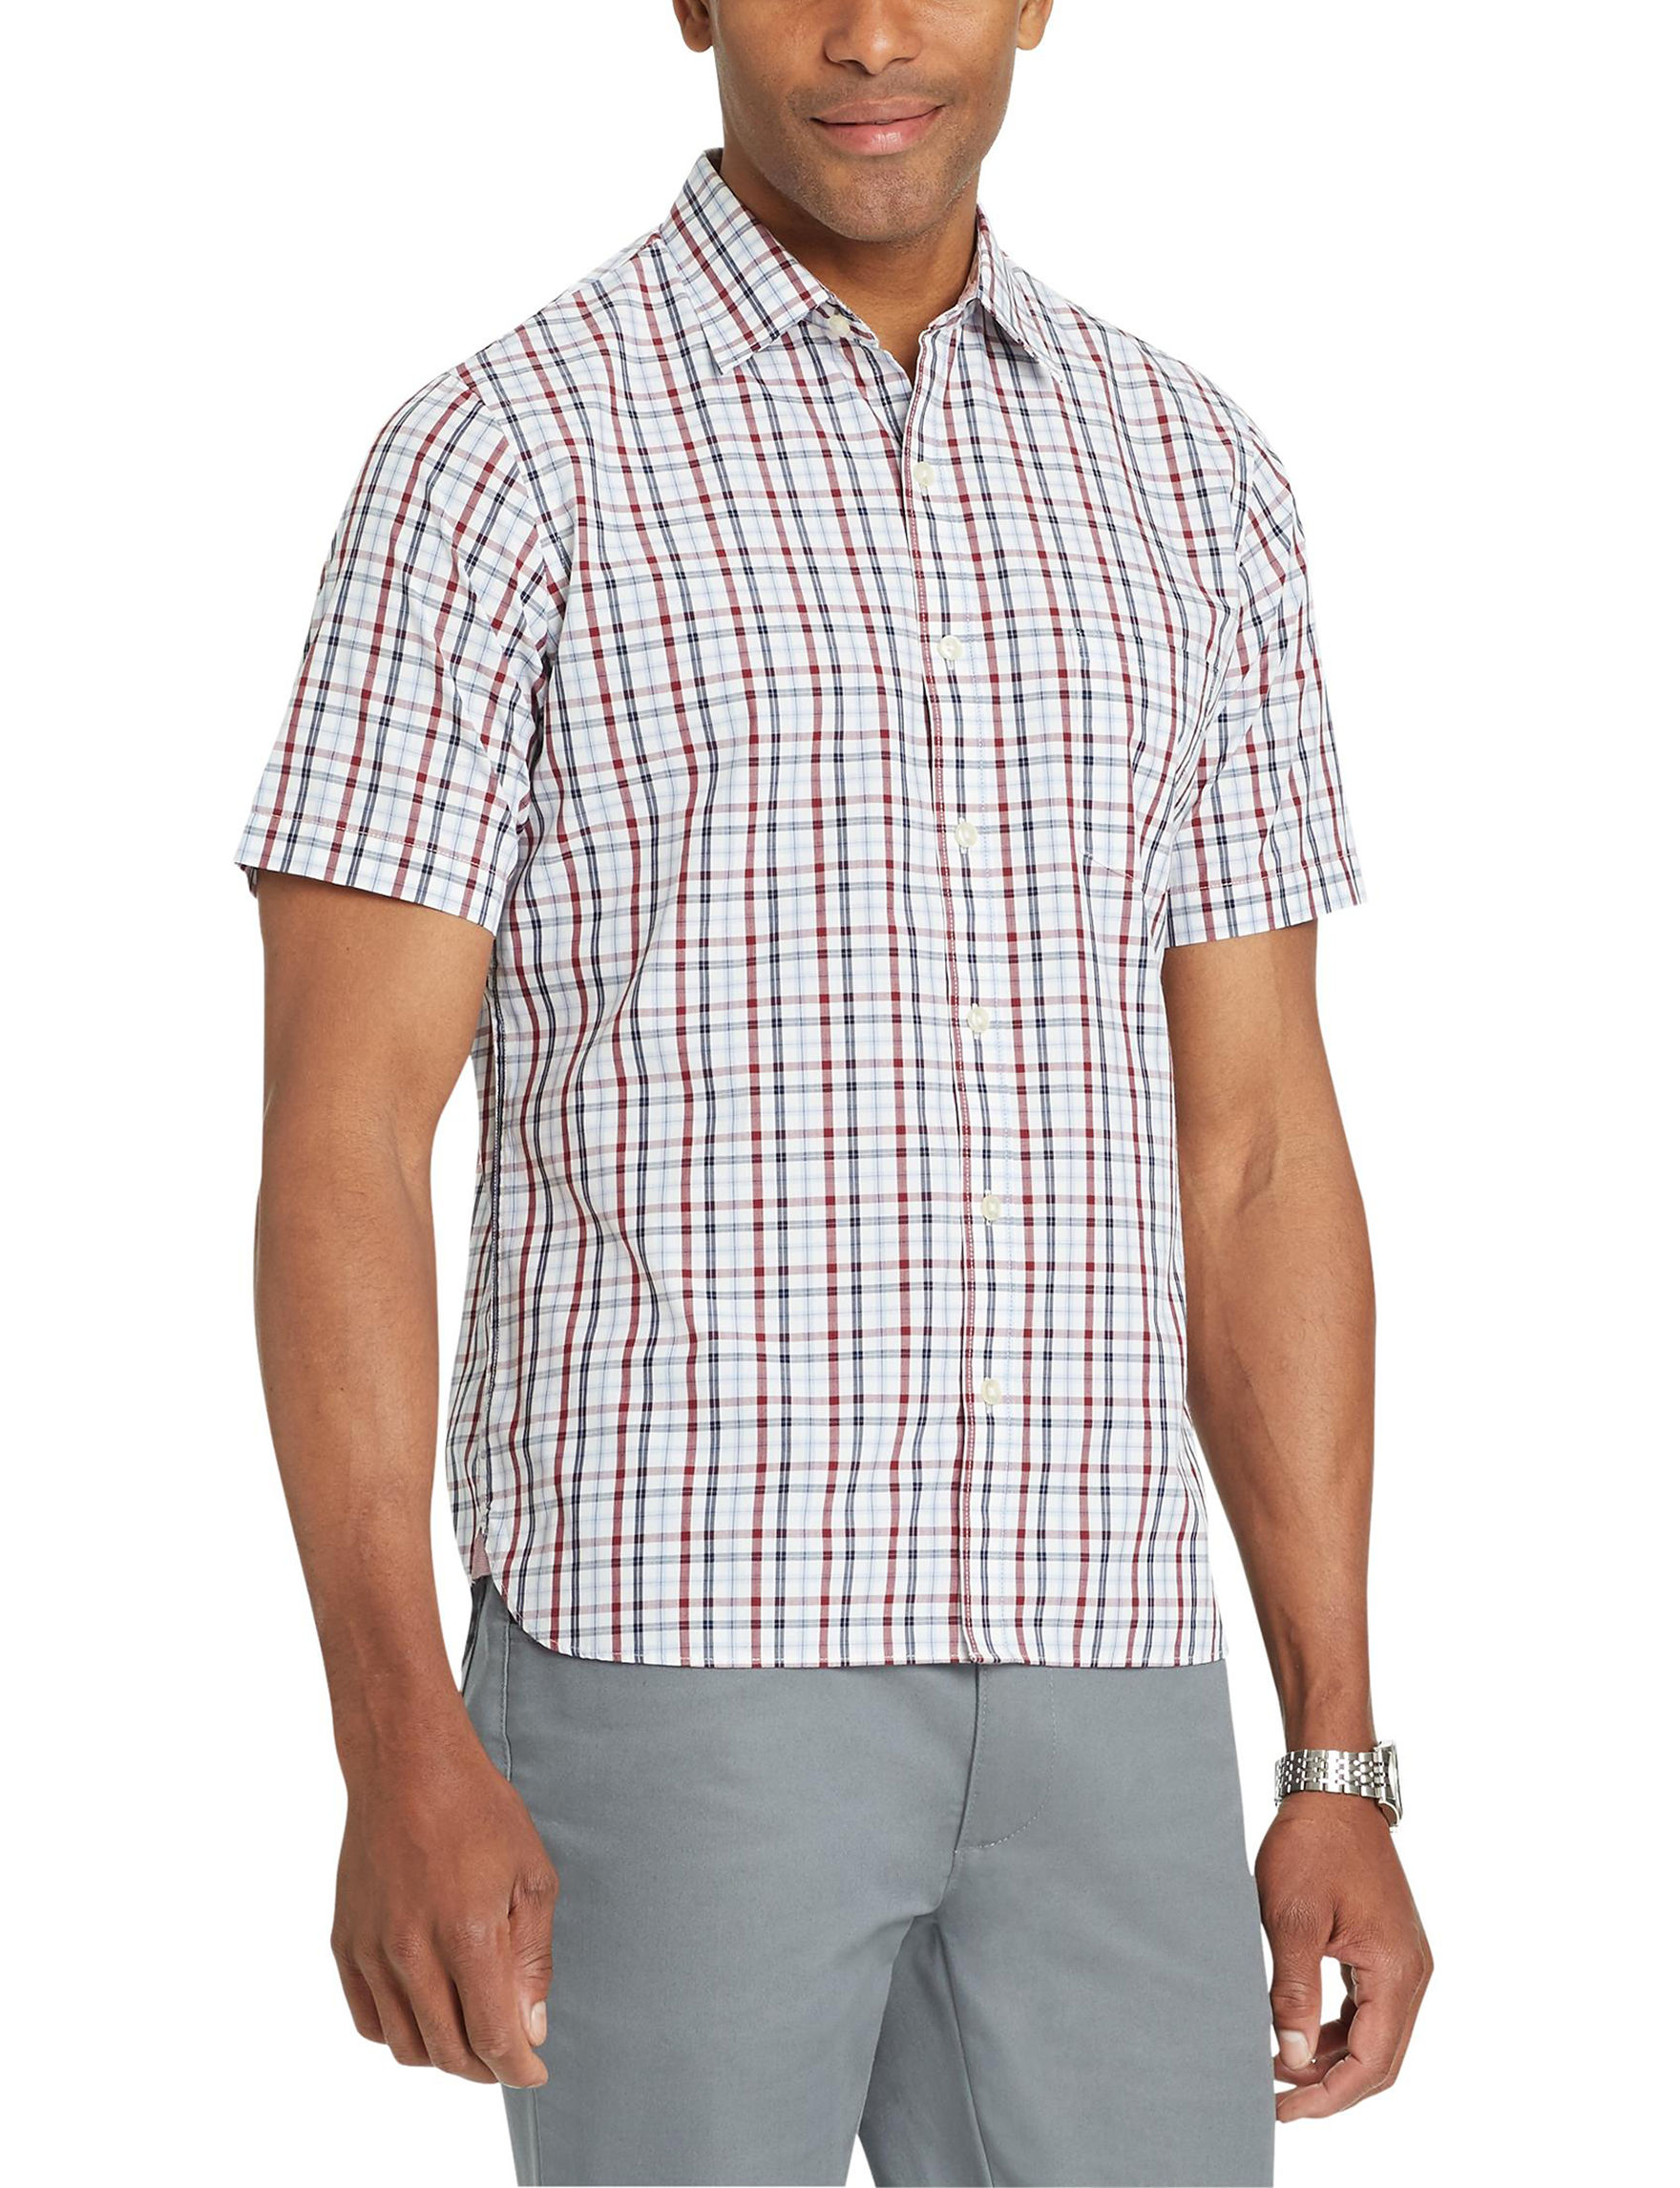 Van Heusen Red Plaid Casual Button Down Shirts